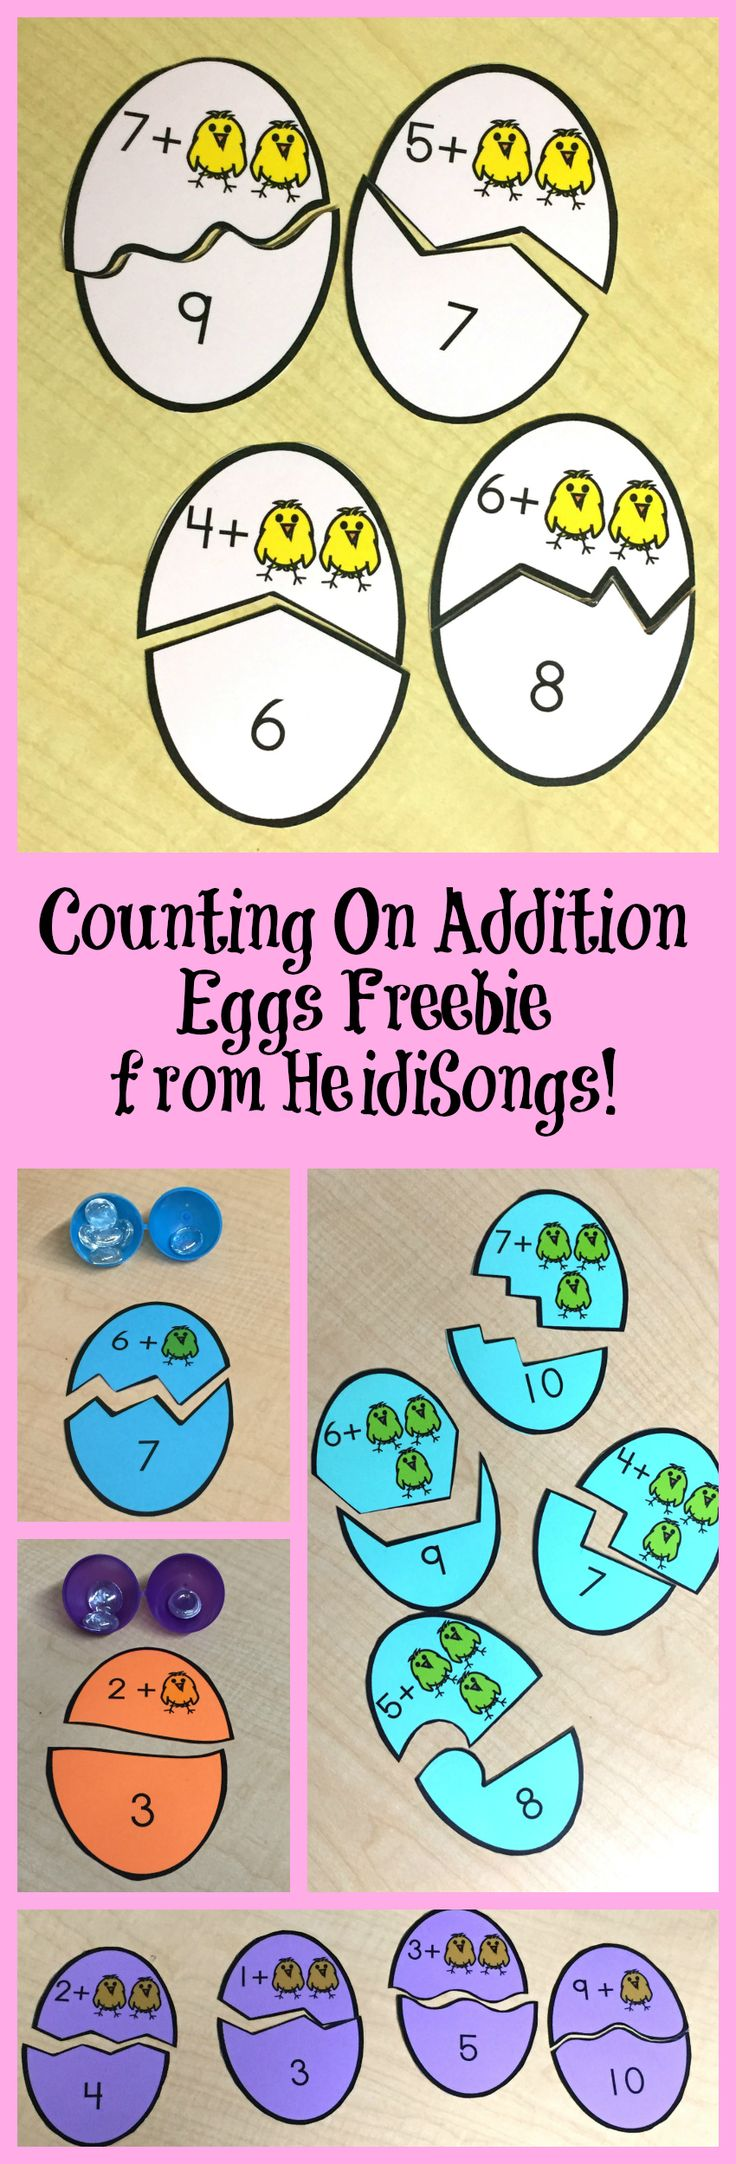 Counting On Addition Eggs Freebie From HeidiSongs!  #kindergarten